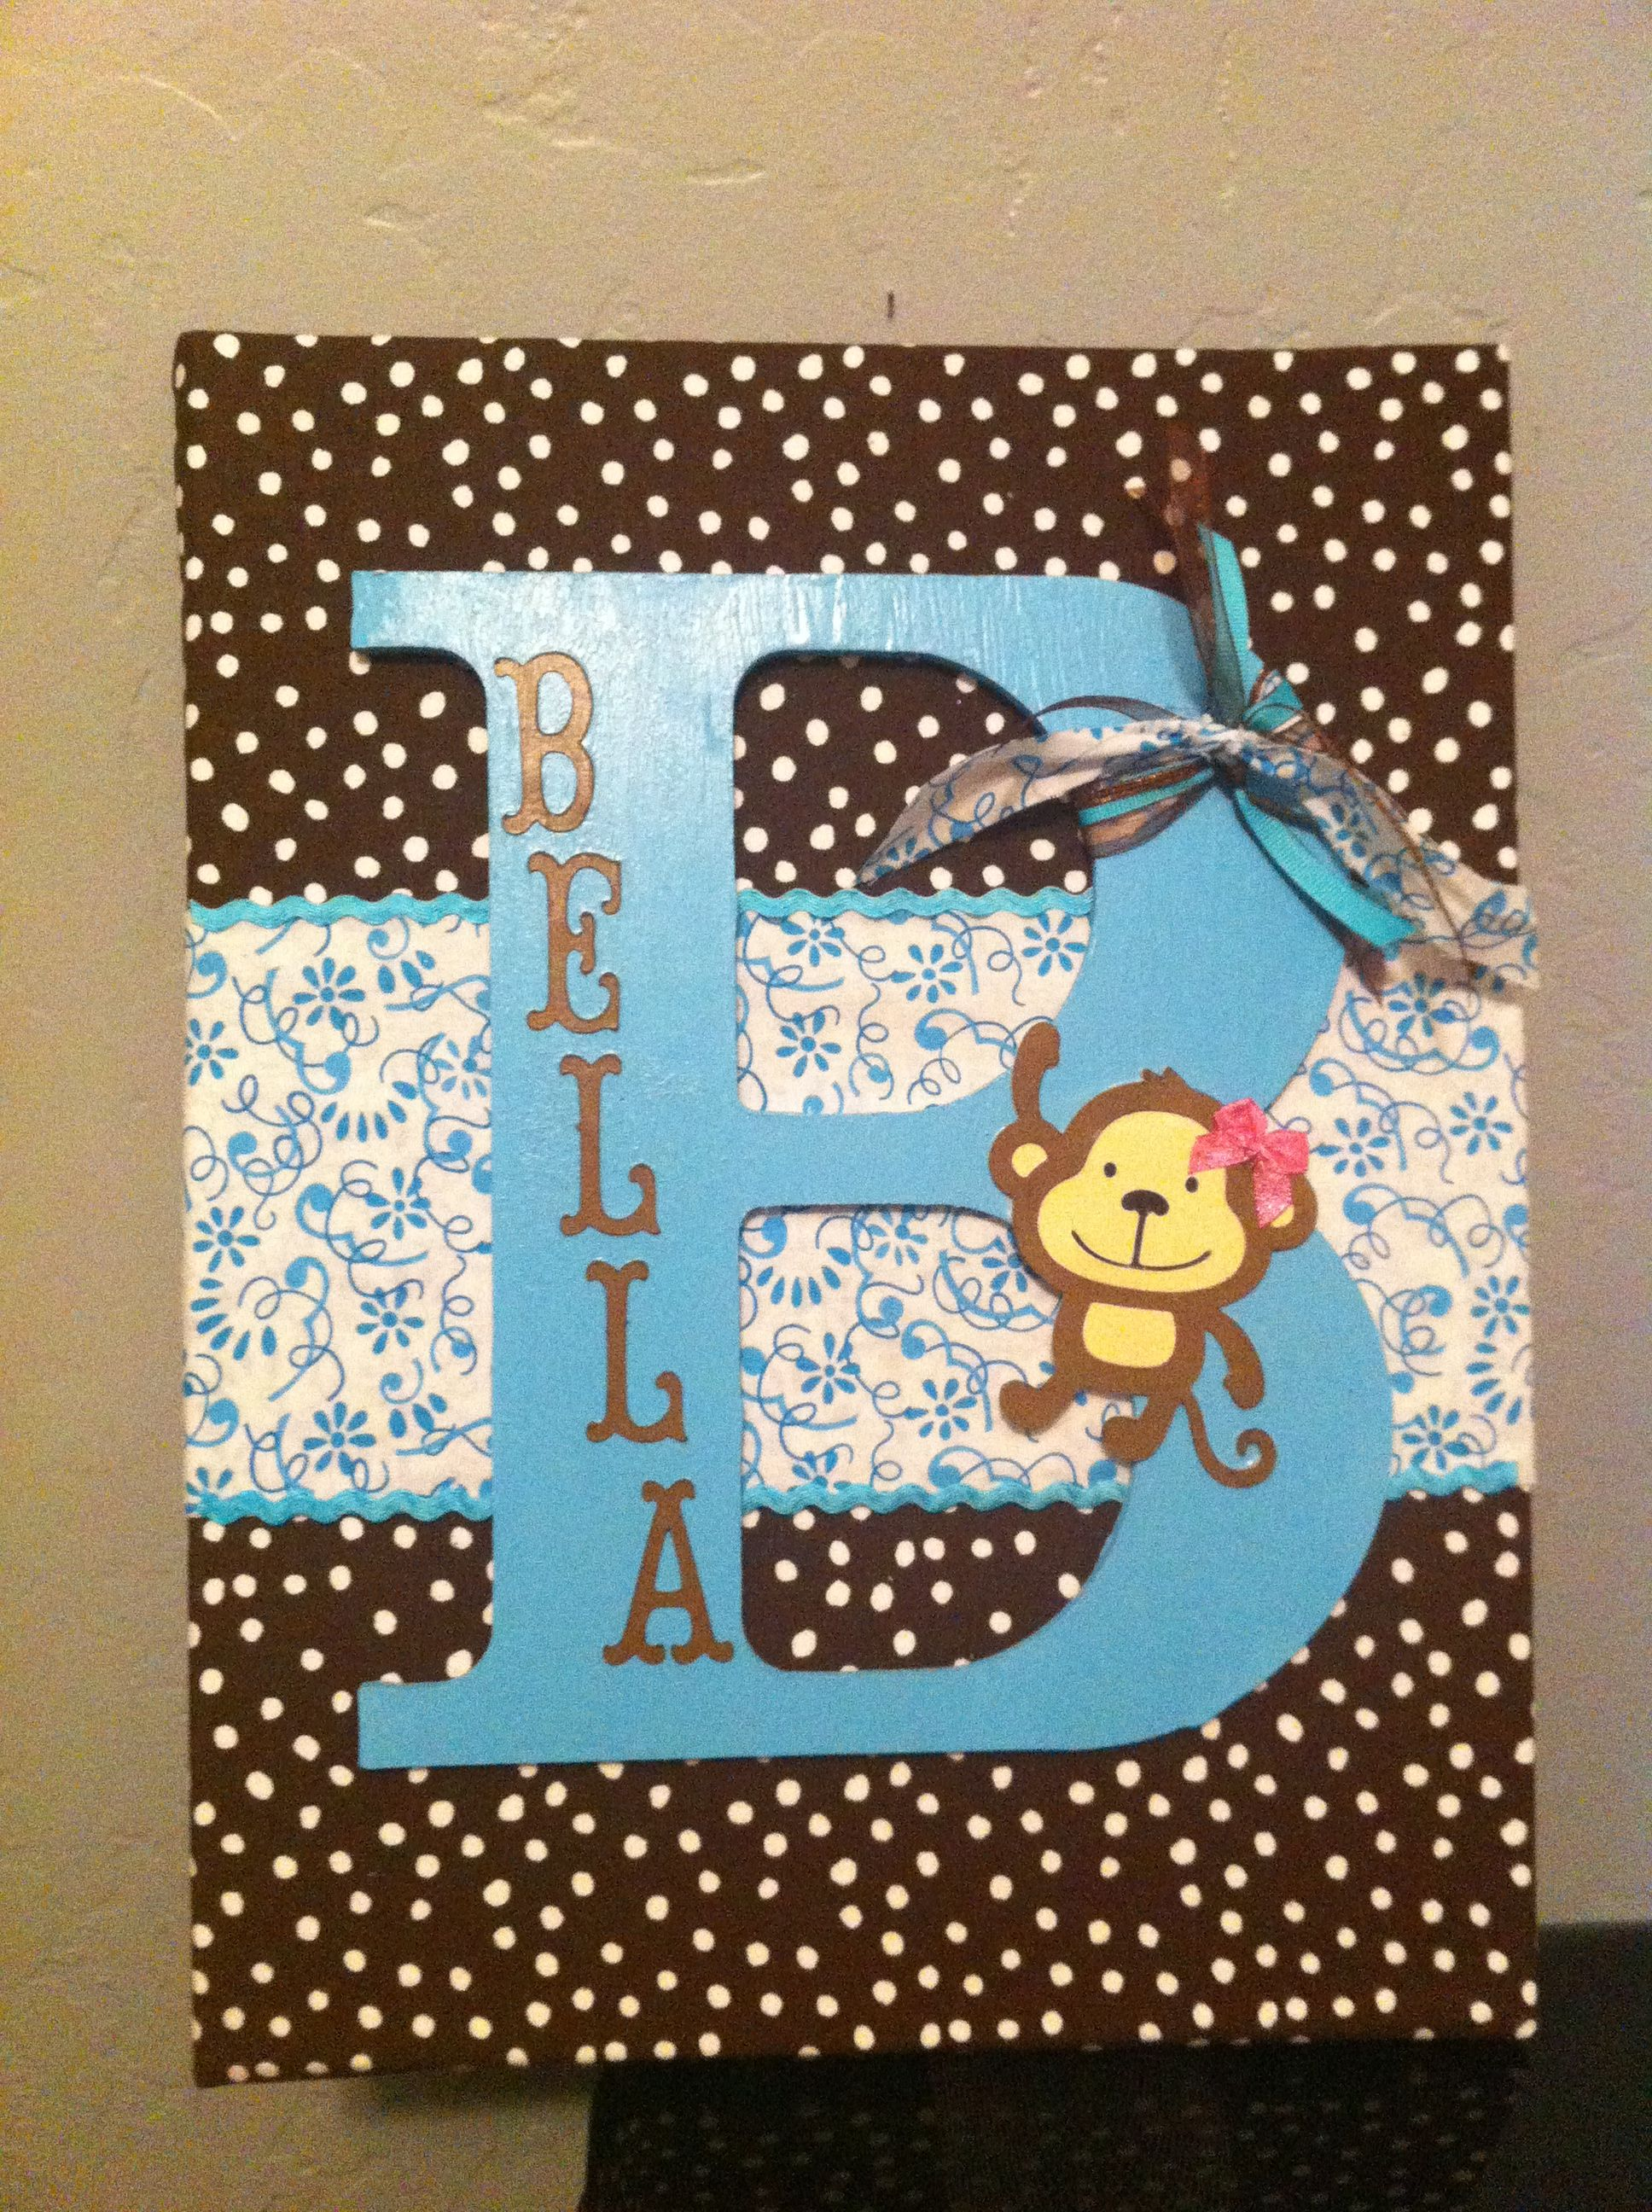 On Canvas Cover With Fabrics Paint Wooden Letter And Glued With Fabric Glue Mod Podge Card